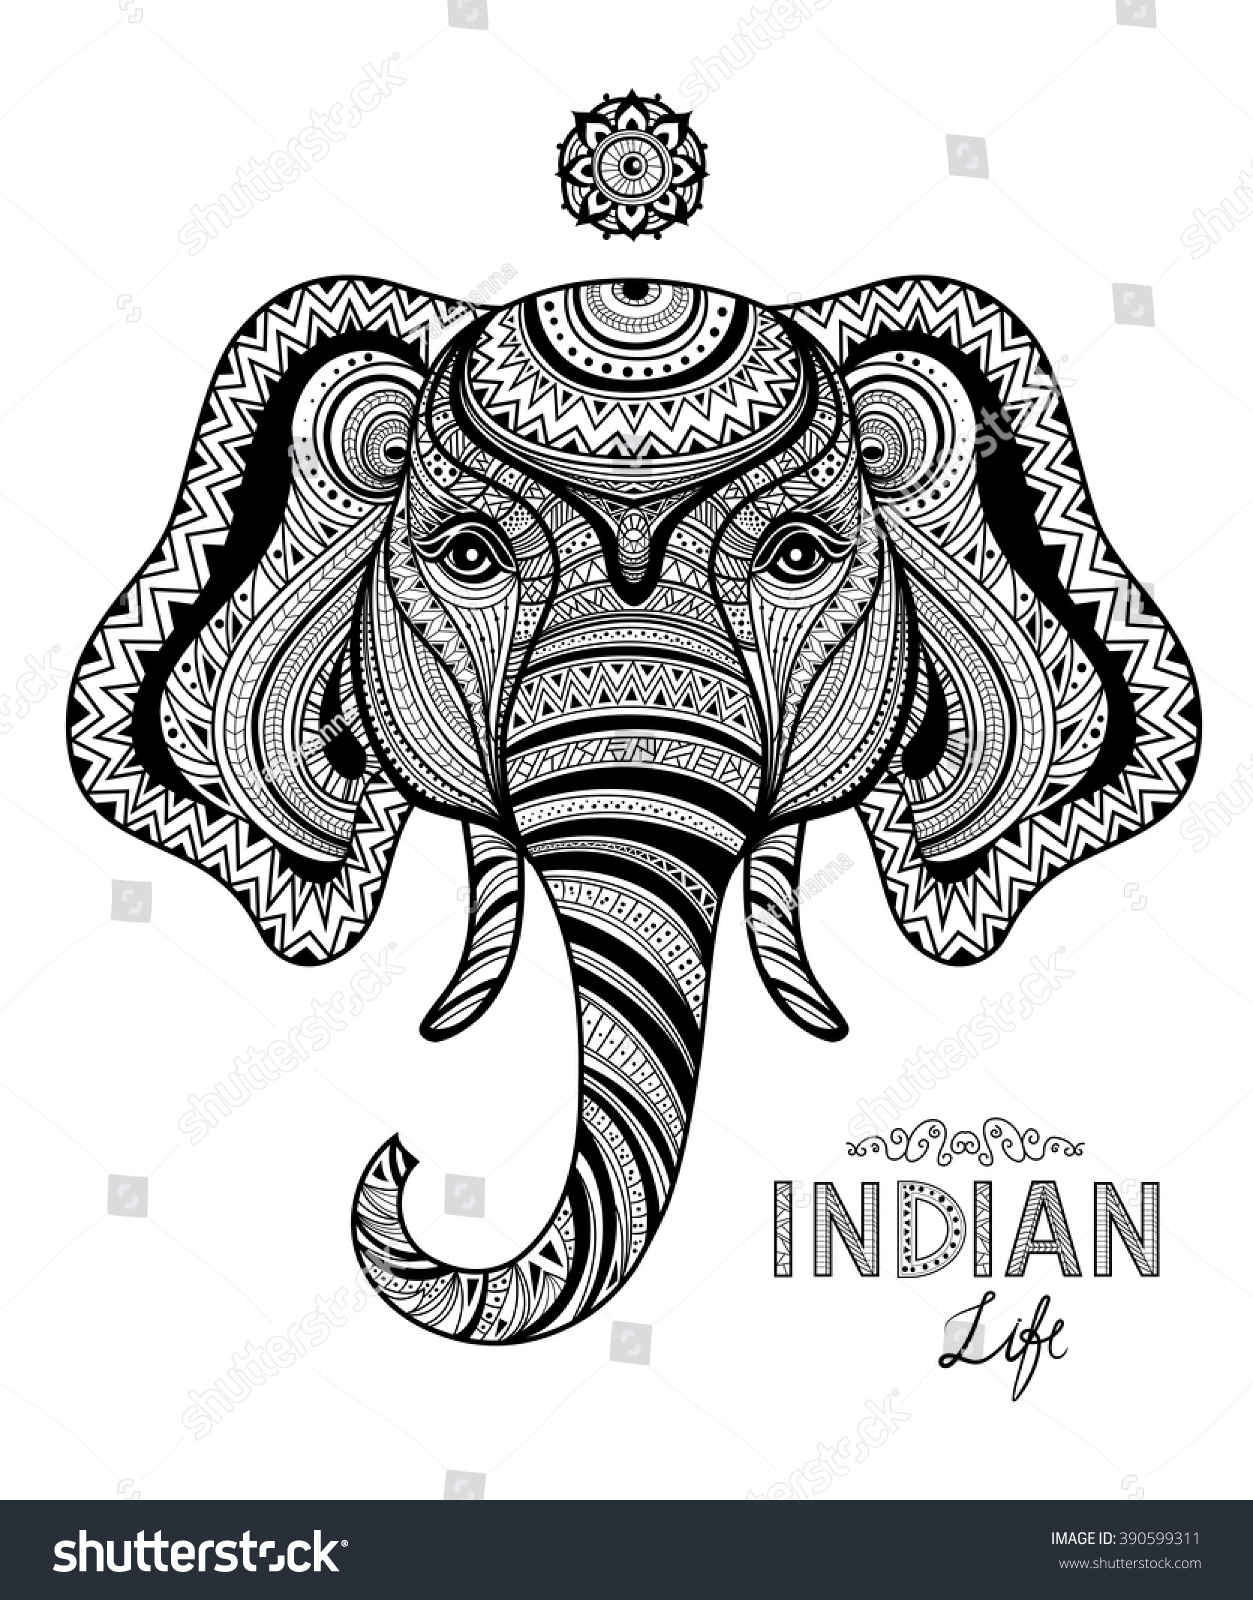 Abstract indian life symbol elephant zentangle stock vector abstract indian life symbol elephant in zentangle style for doodle coloring page vector illustration buycottarizona Images